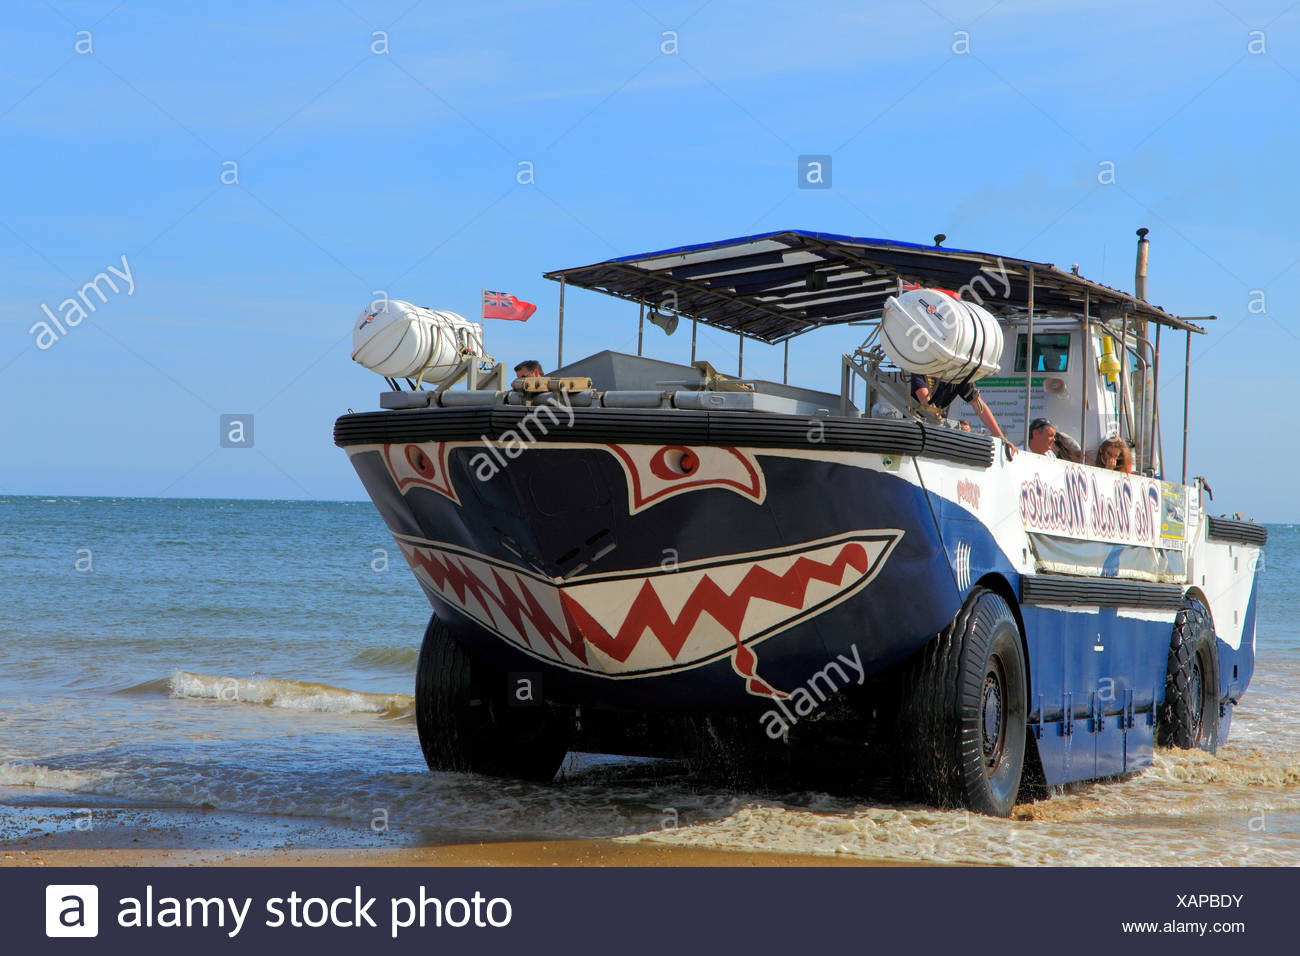 The Wash Monster, pleasure, sea cruises, trips, cruiser, amphibious vehicle, Hunstanton Beach, Norfolk, England, UK - Stock Image